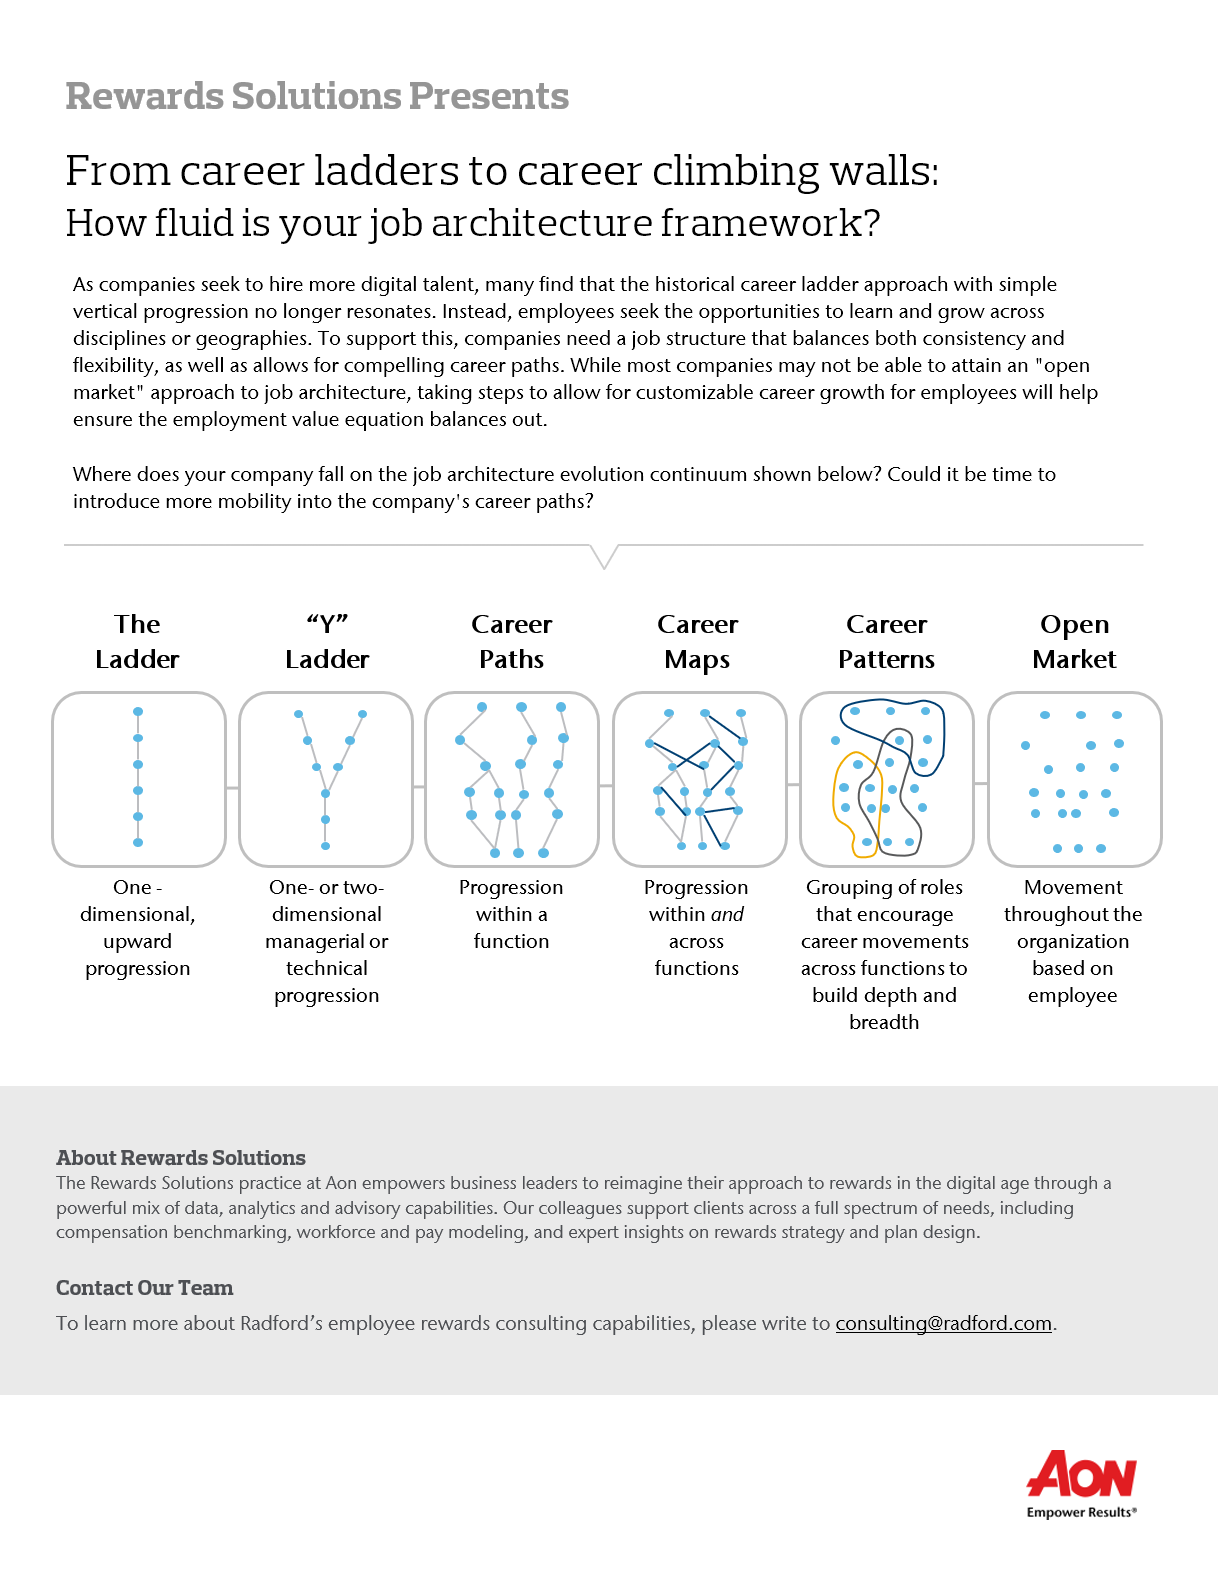 Aon | How Fluid is Your Job Architecture Framework?